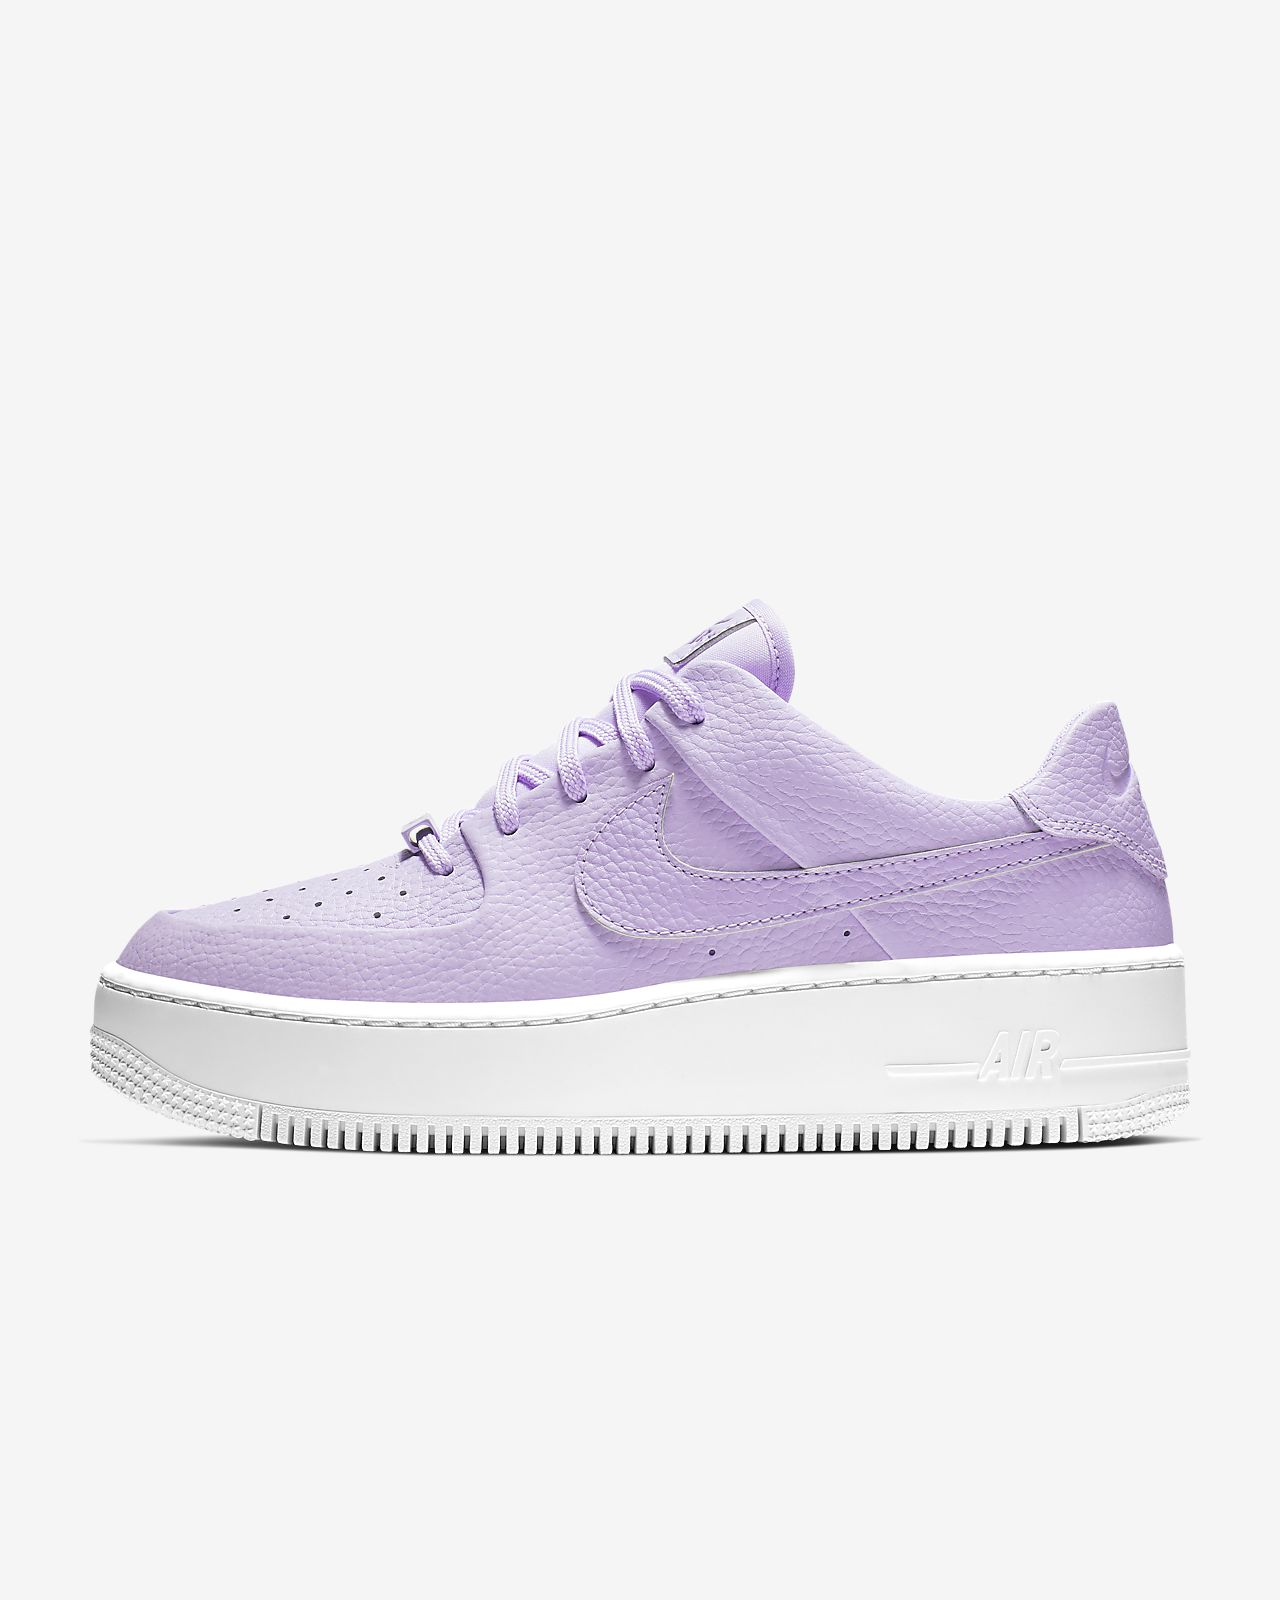 promo code 04706 75fb4 Women s Shoe. Nike Air Force 1 Sage Low